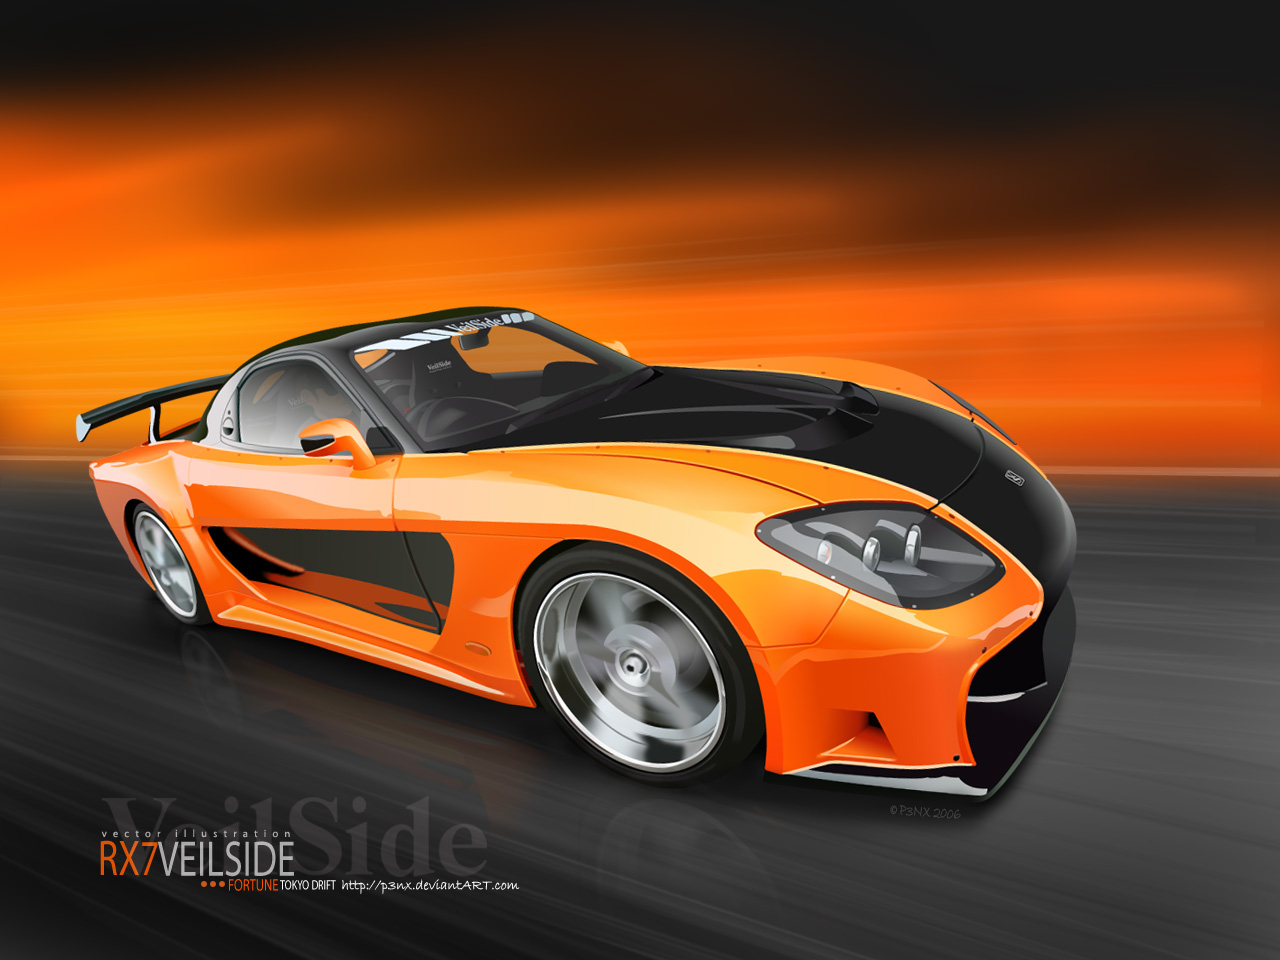 Carros Wallpaper, mazda rx7, carros. Carros Wallpaper